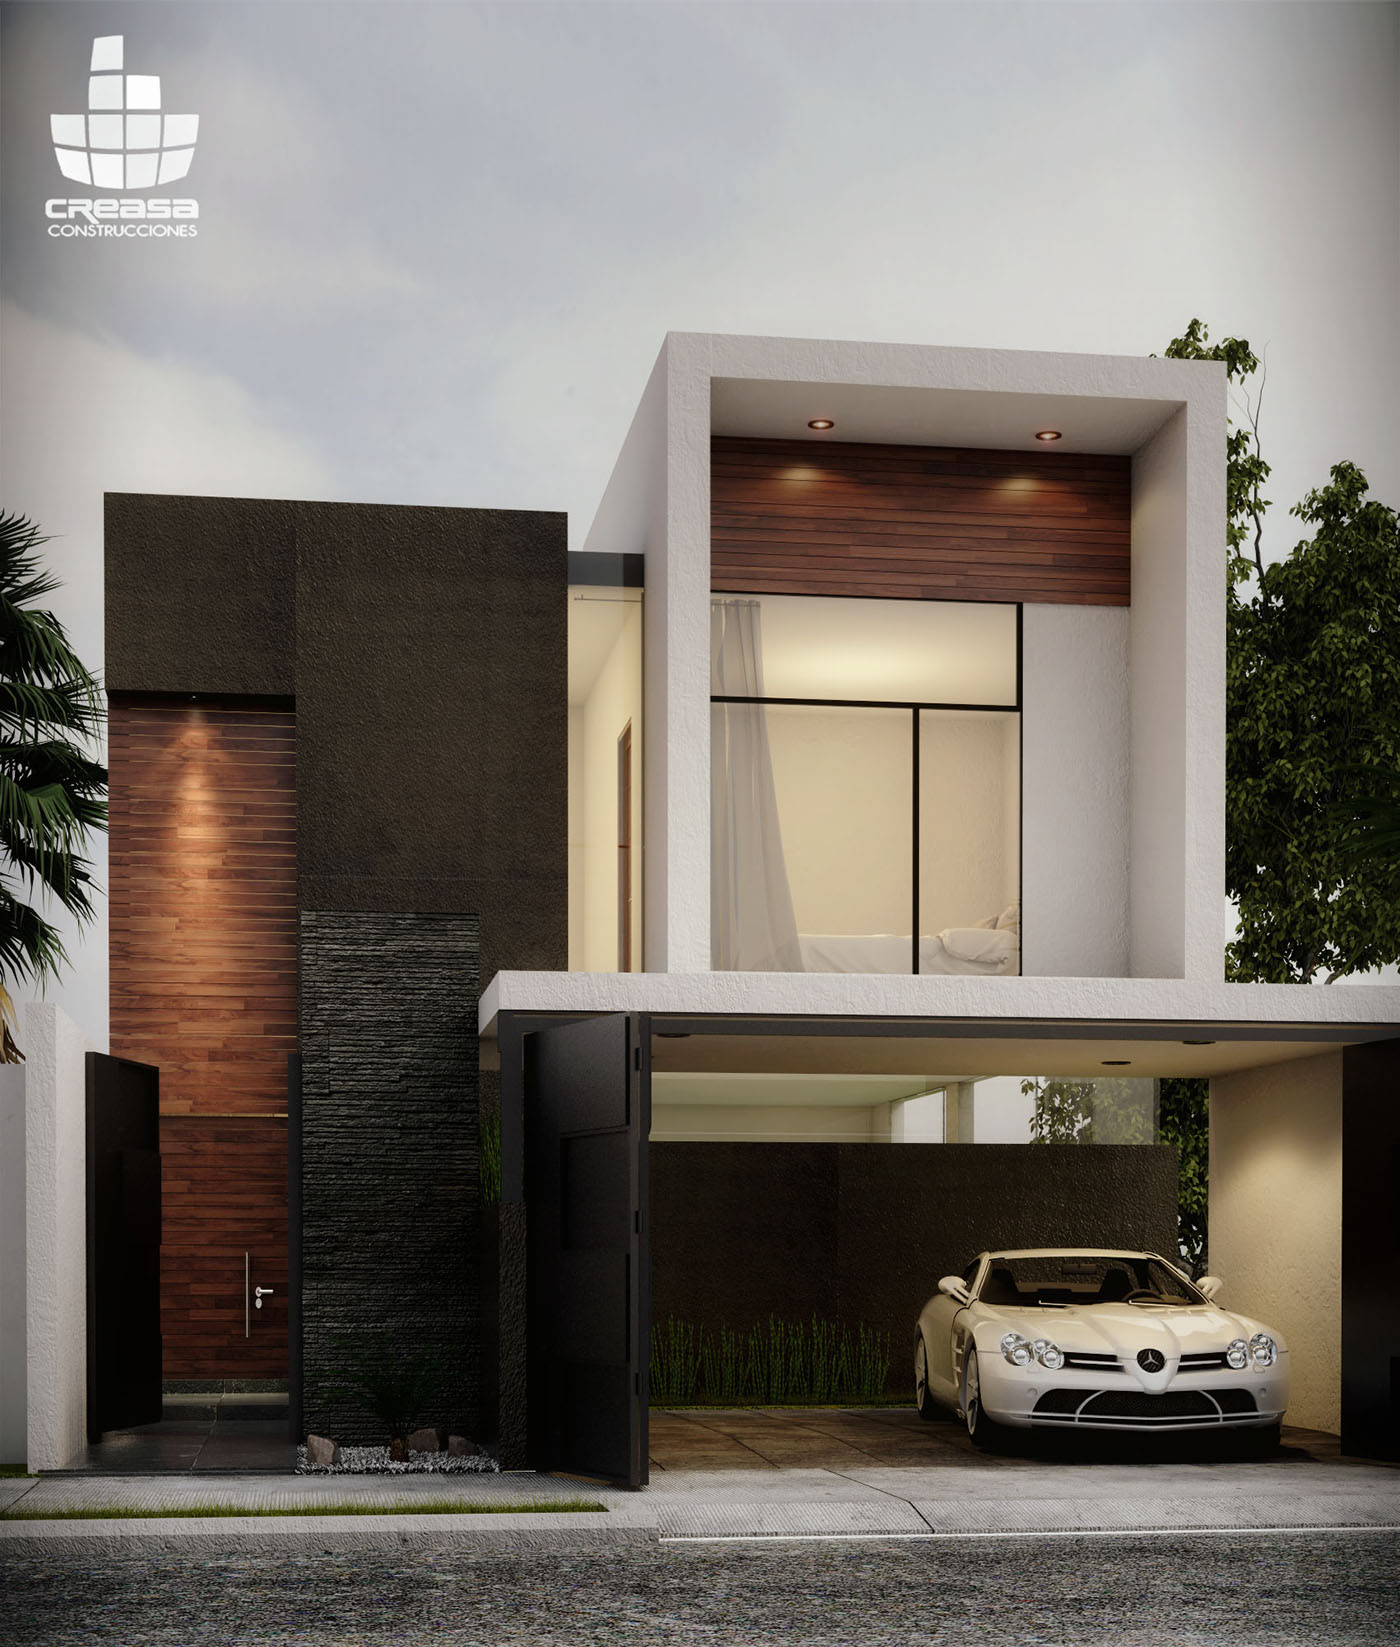 Casa jv colima 04 15 on behance - Materiales para fachadas modernas ...